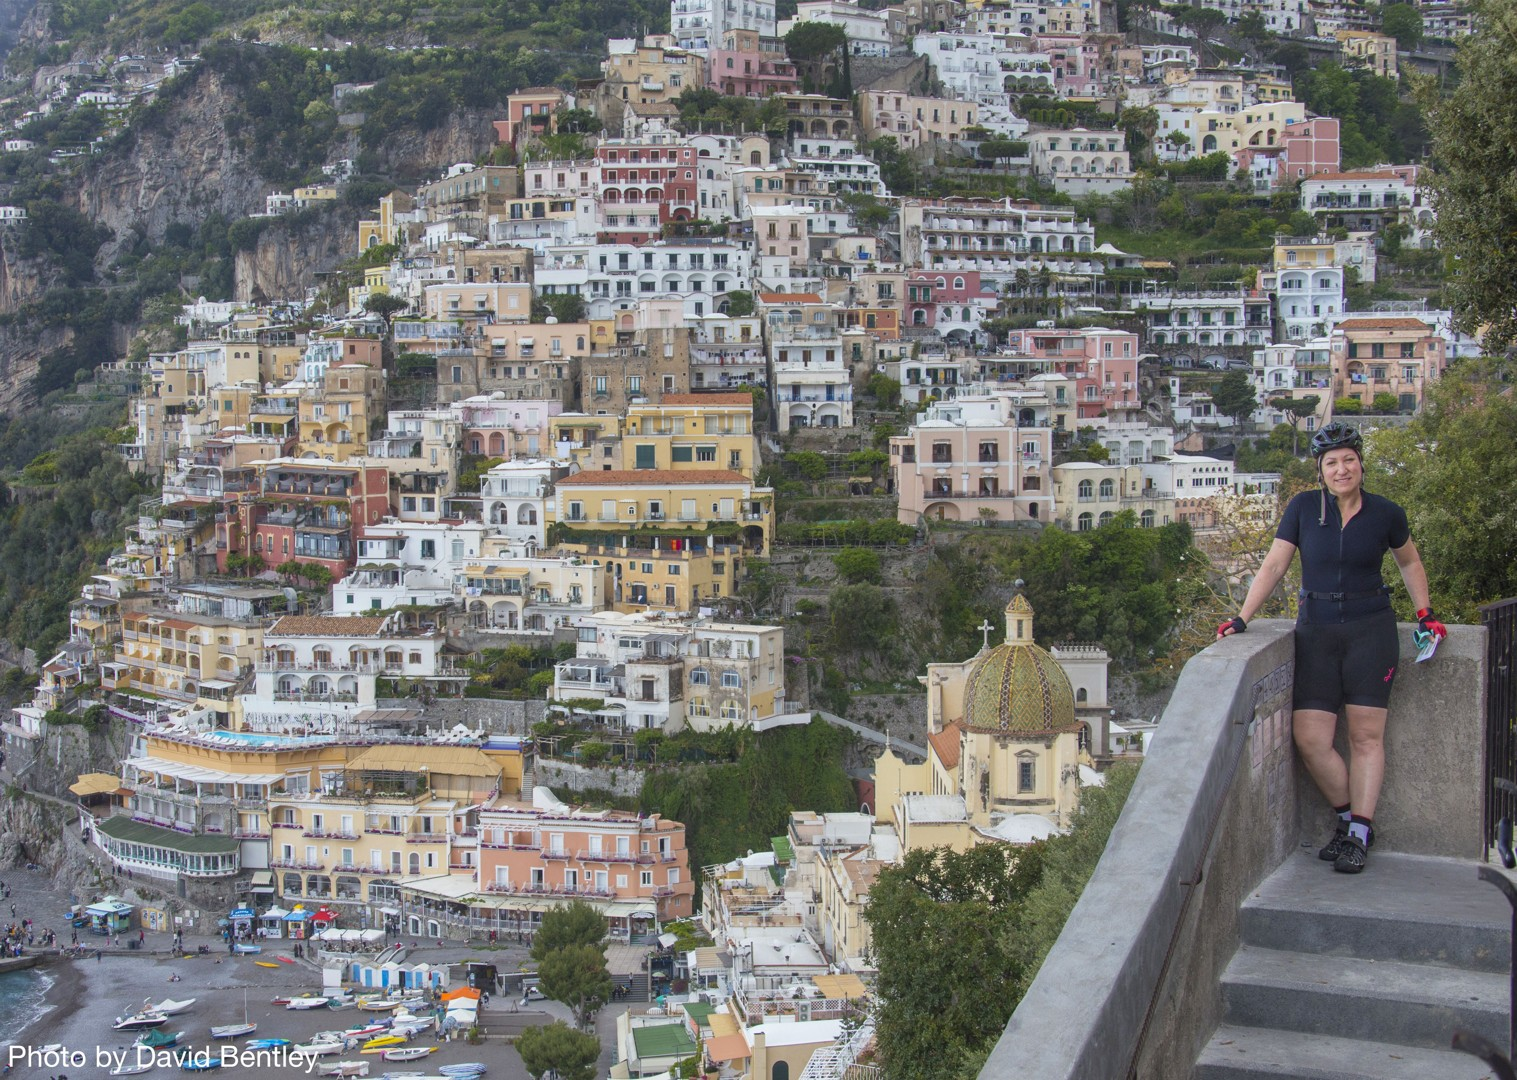 self-guided-cycling-holiday-in-italy-amalfi-coast-and-cilento-city-views.jpg - Italy - Cilento and The Amalfi Coast - Self-Guided Leisure Cycling Holiday - Leisure Cycling